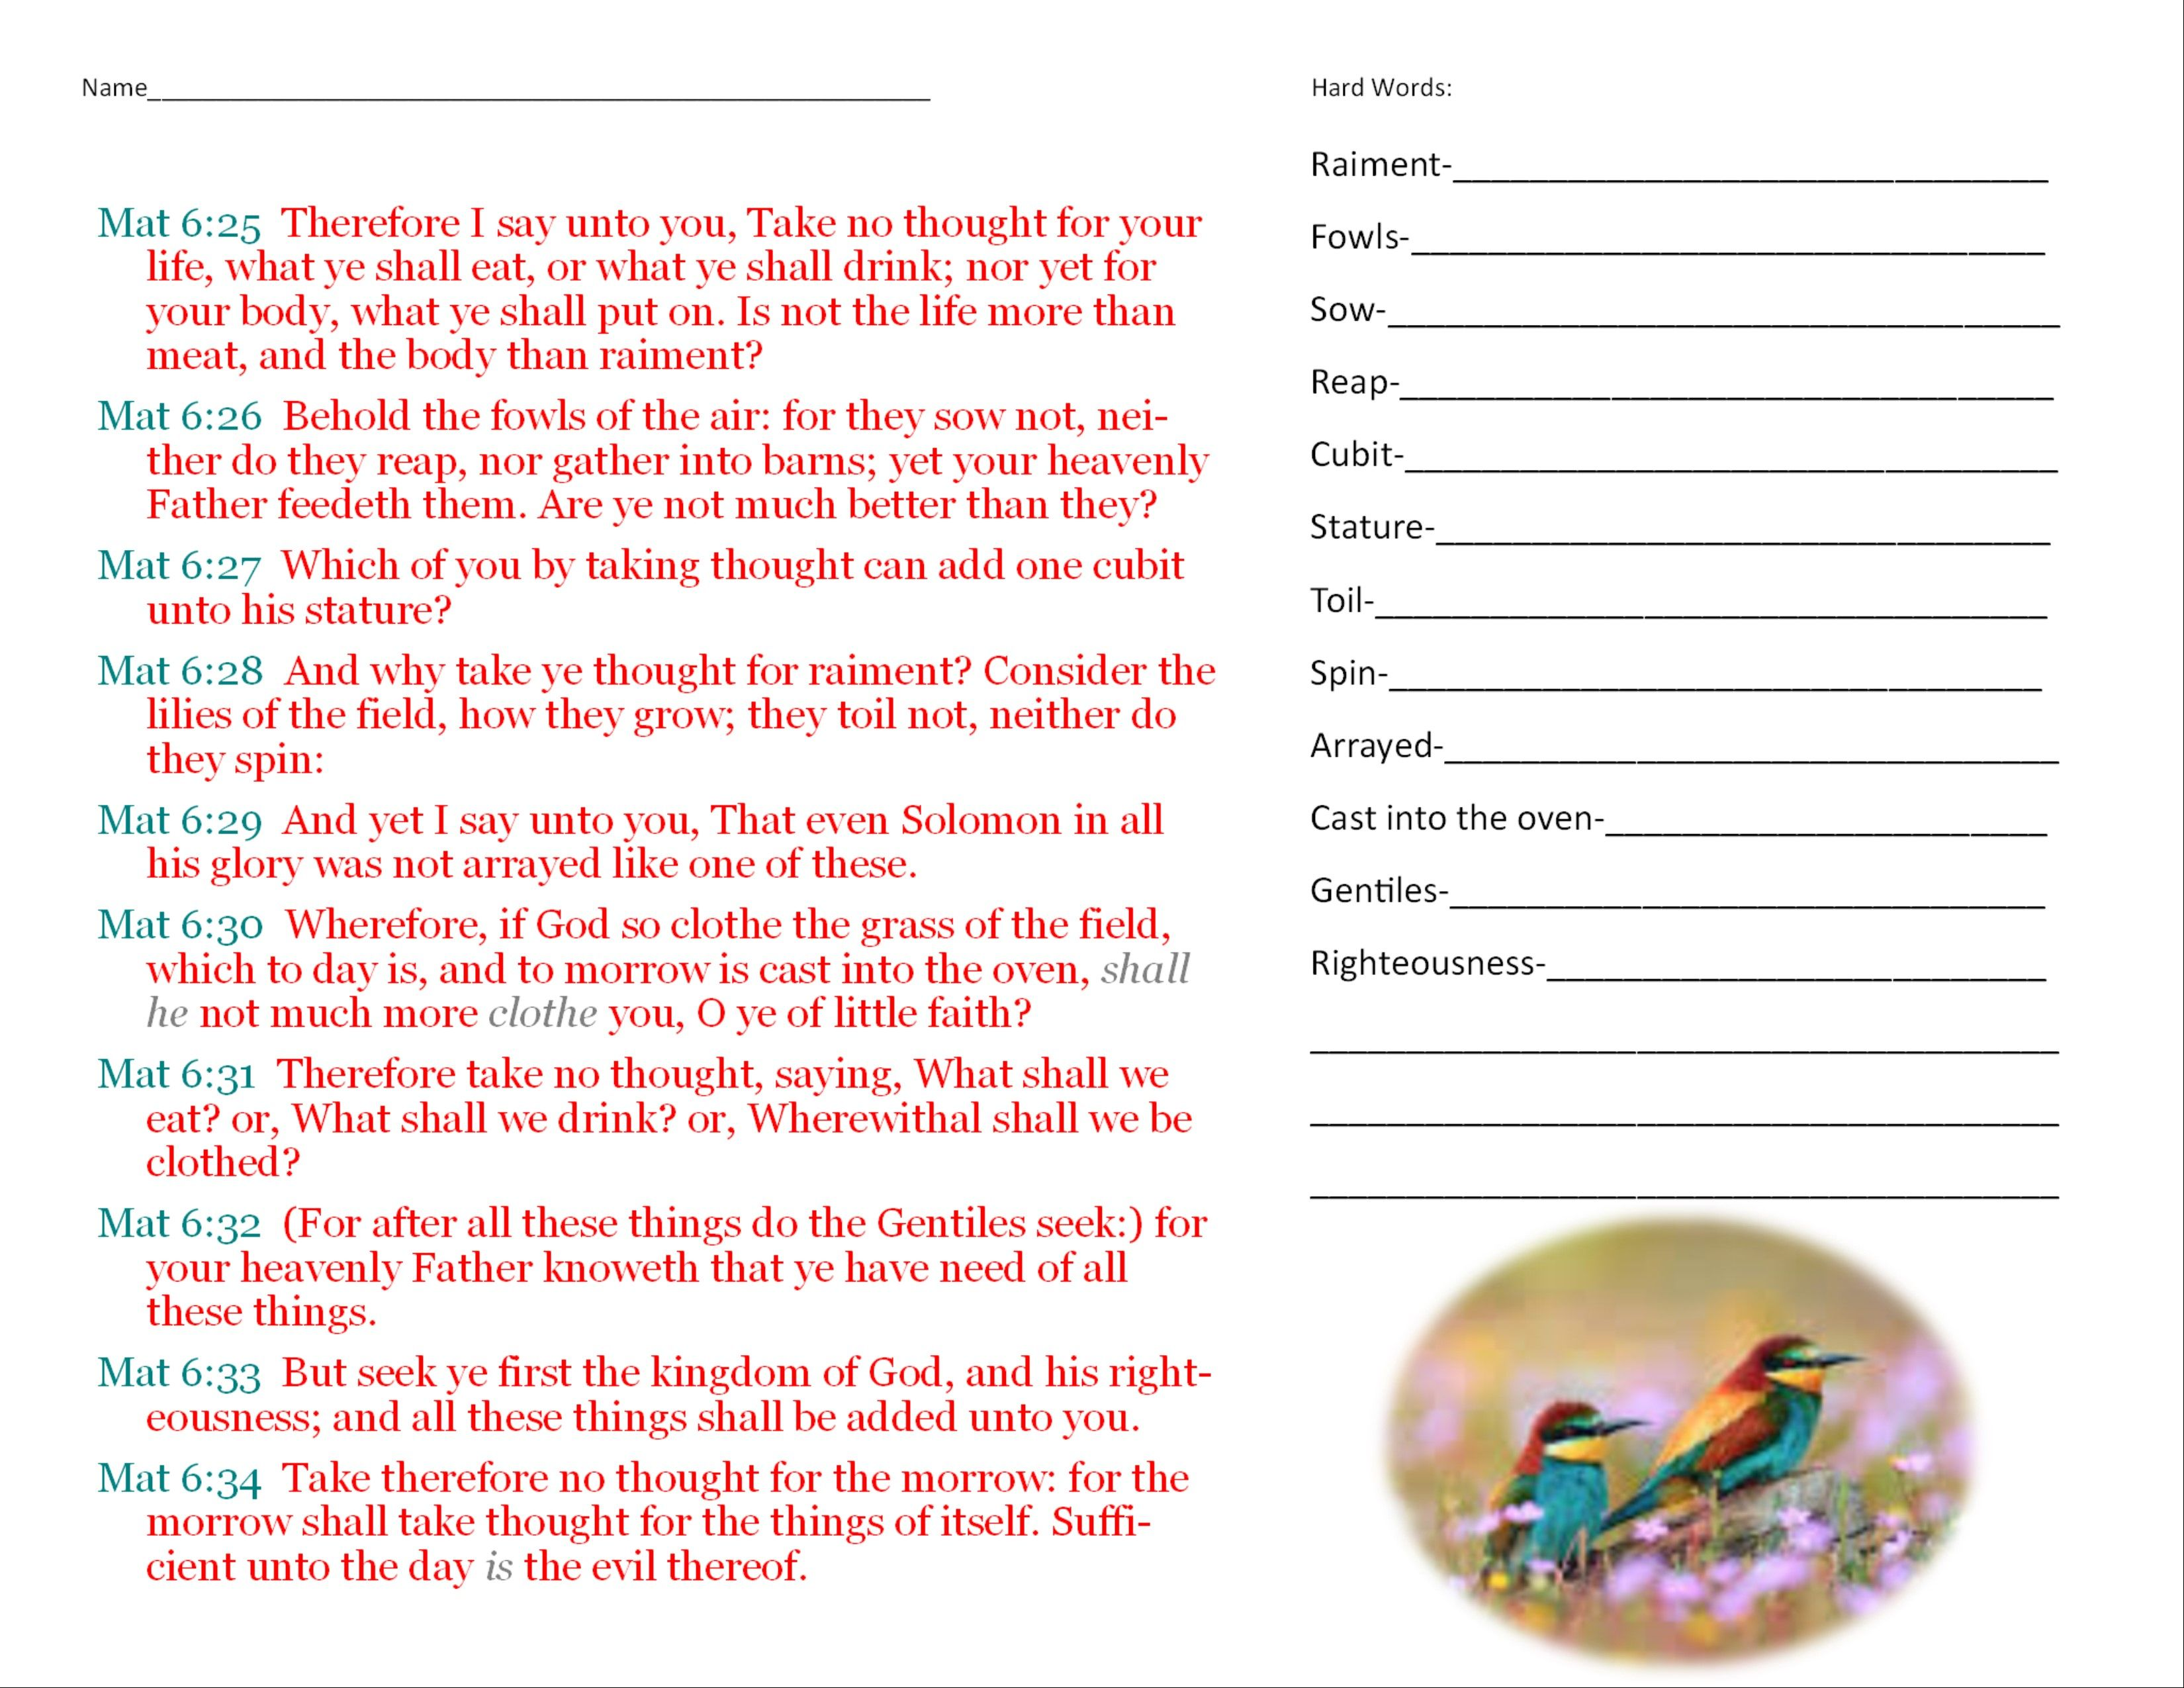 This Is A Worksheet For A Lesson On Matthew 6 25 34 It Has The Vocabulary Words On One Side